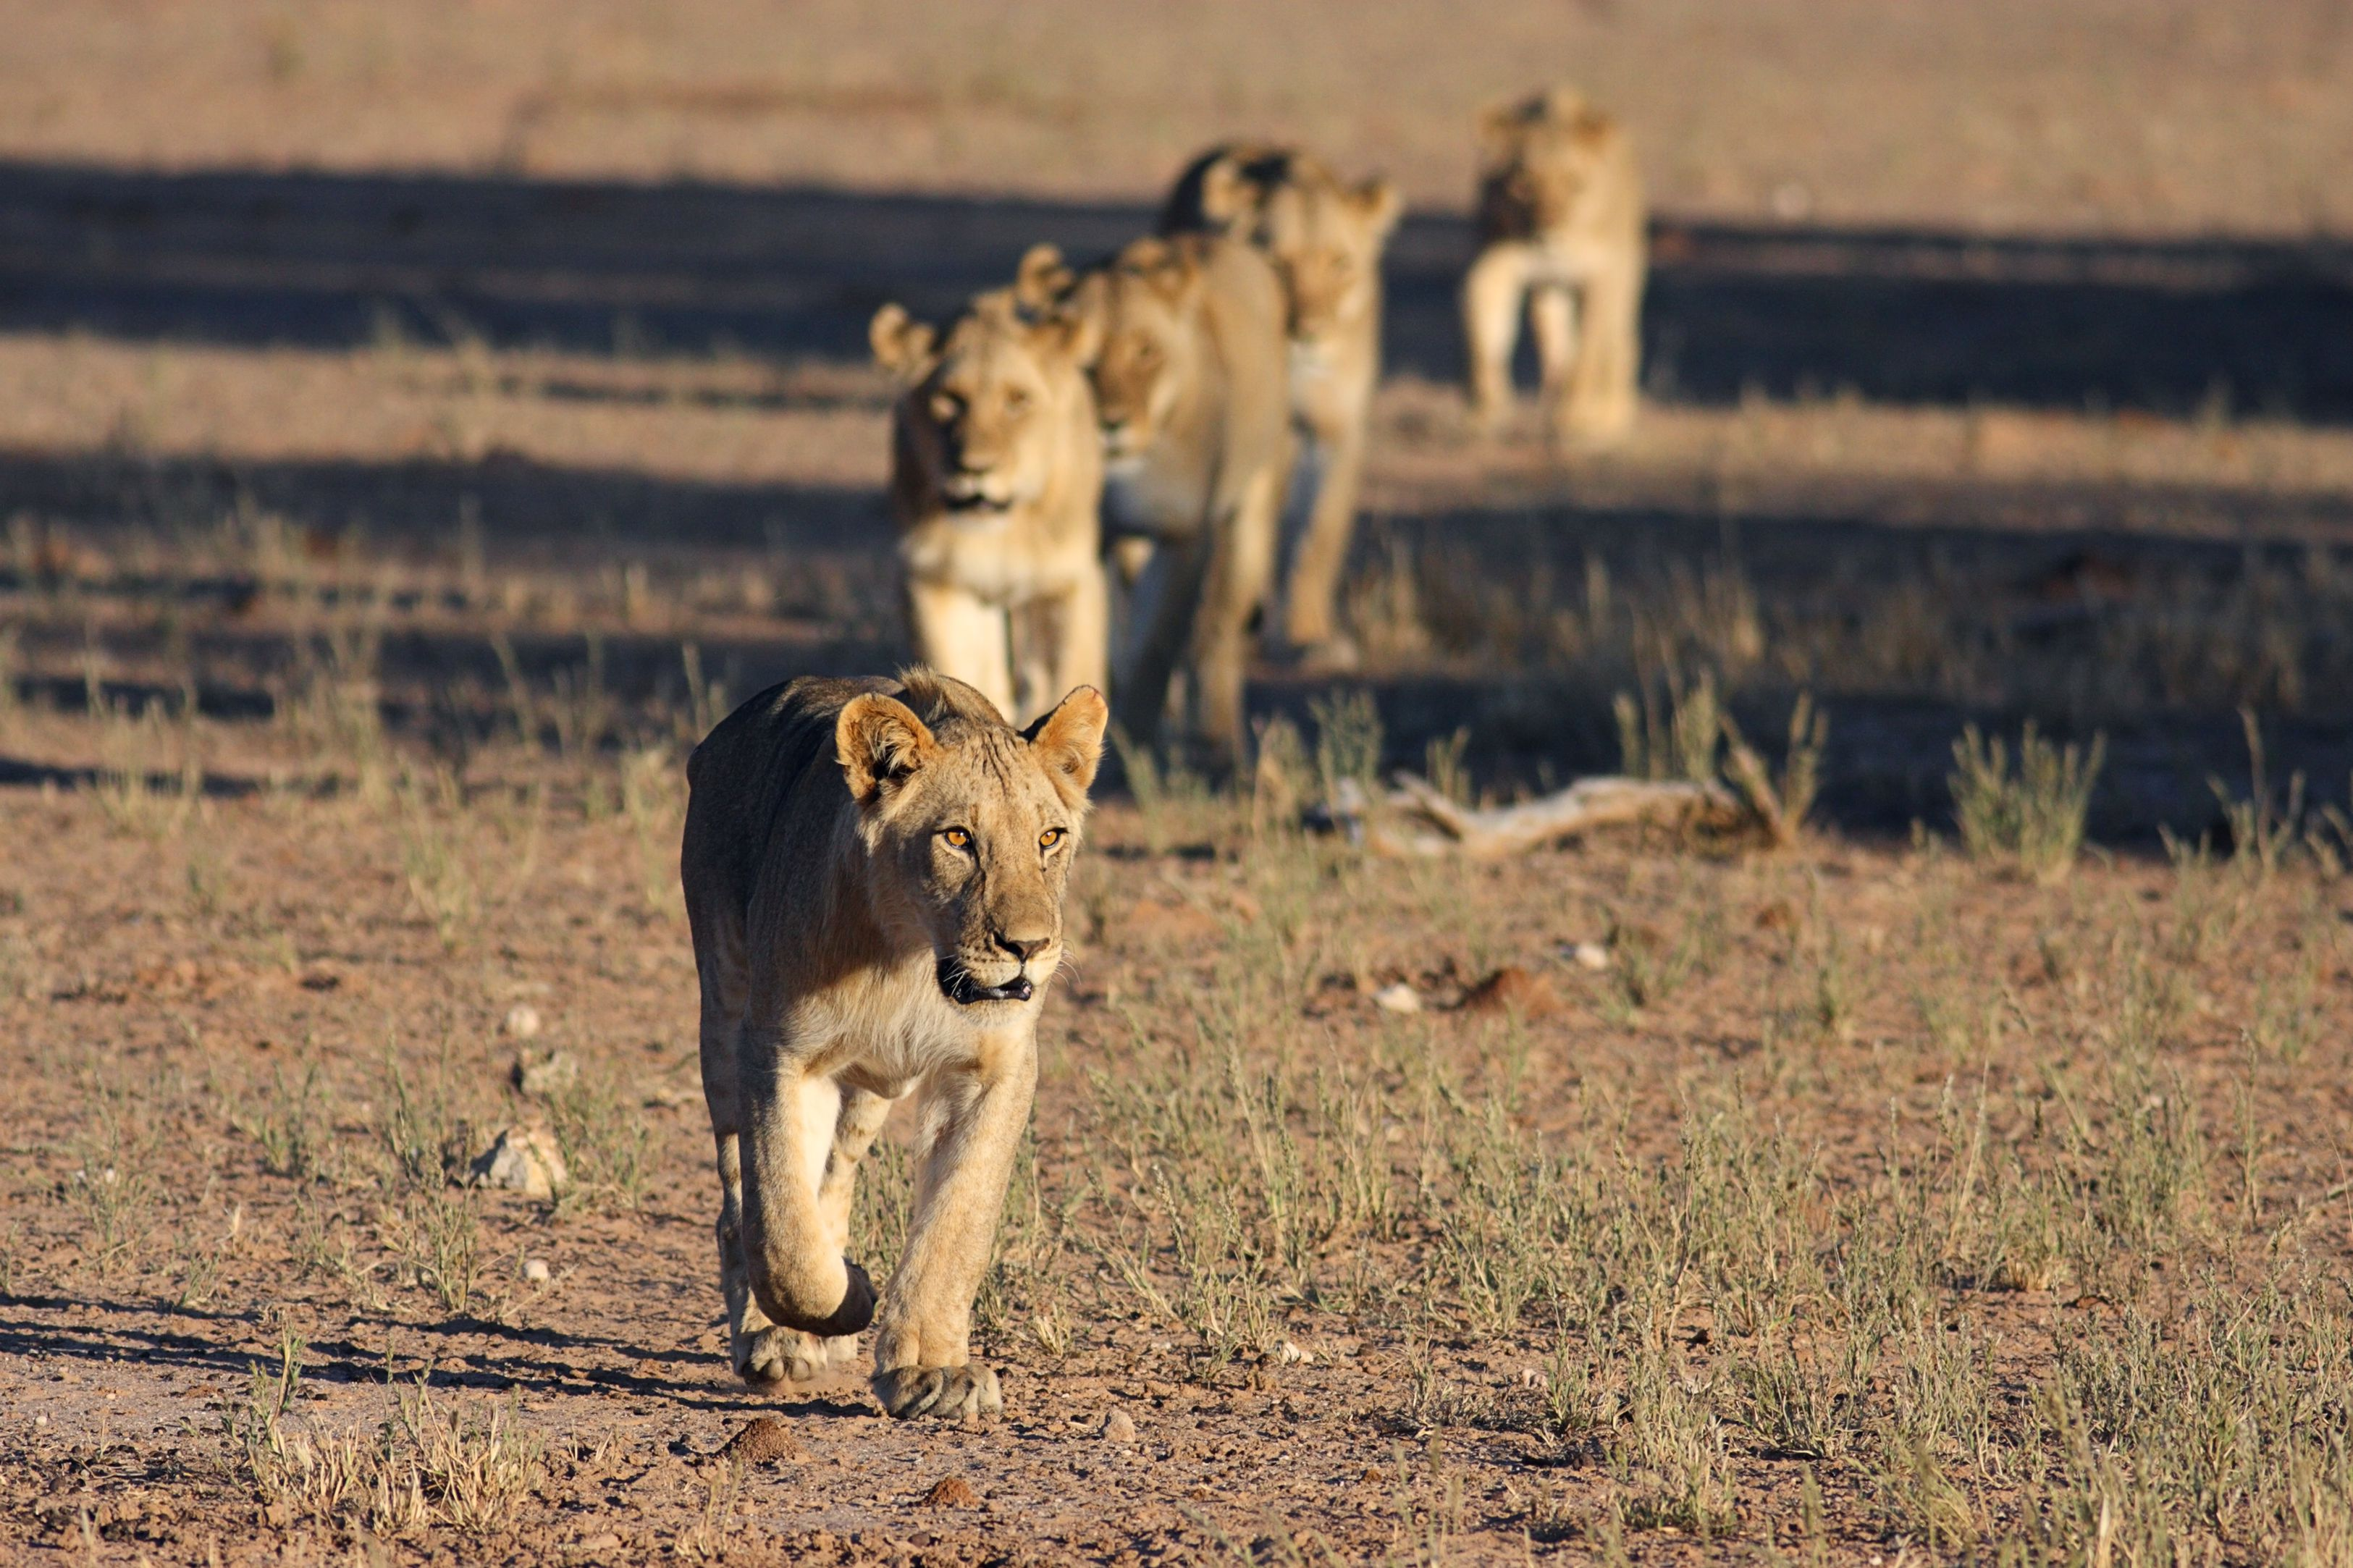 Lion pride moving across the African plain